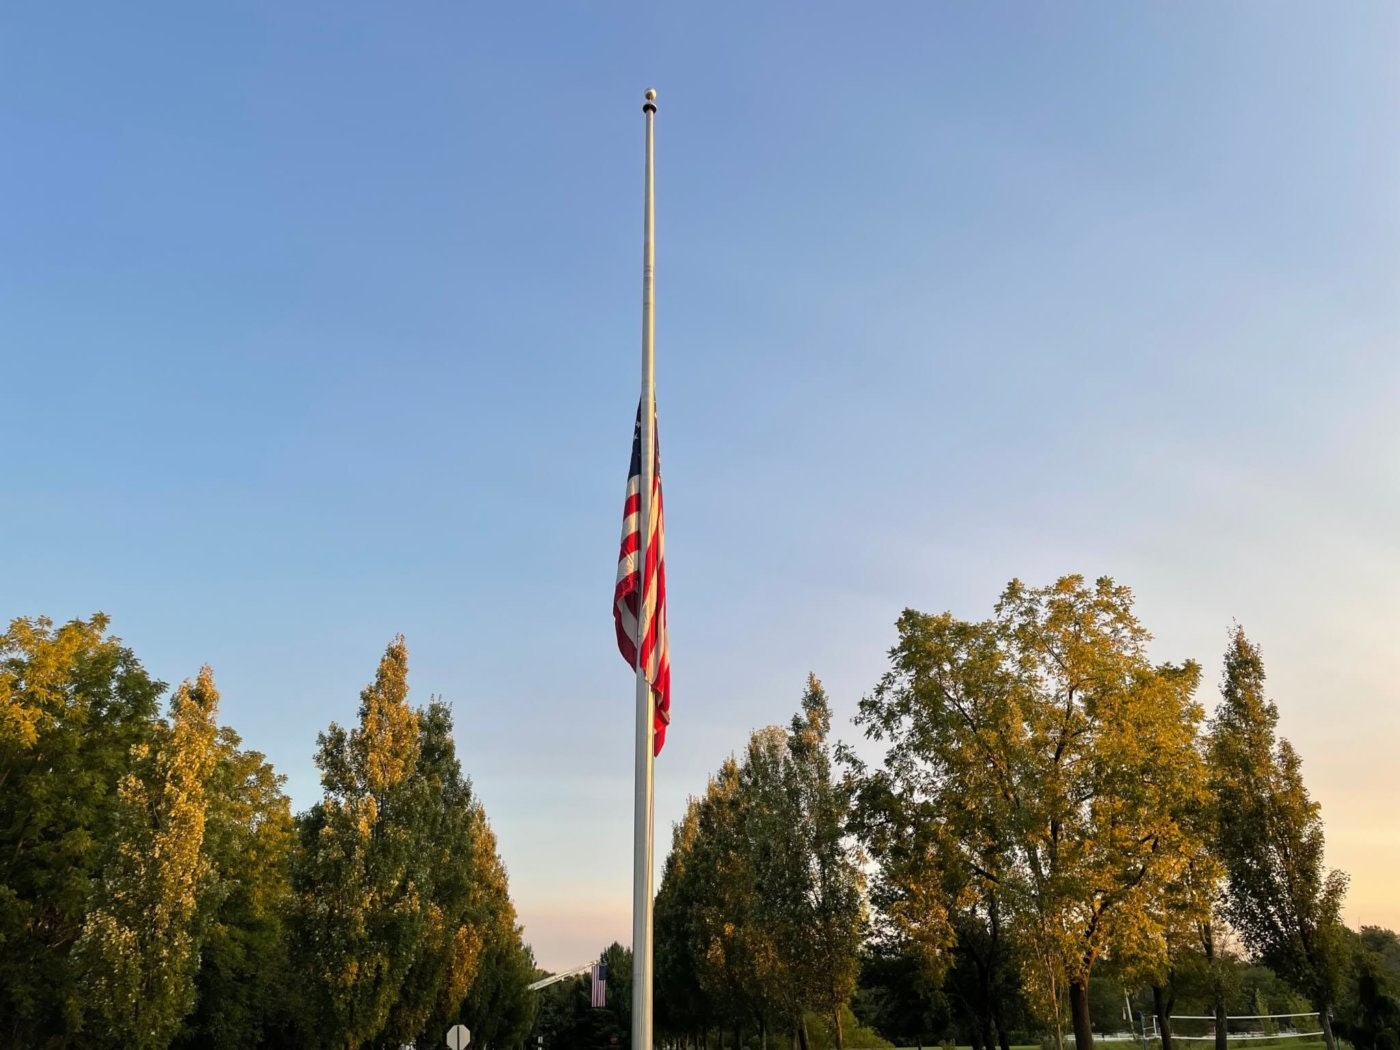 The 9/11 Tribute Flag flies at half-mast over the Garden of Reflection 9/11 Memorial in Bucks County. Three pilots, who were friends with United Airlines Flight 175 pilot Victor Saracini, have taken the flag on flights over each of the crash sites. The 9/11 Tribute Flag is believed to be the only flag that has flown in the air above all three crash sites. (Keystone Photo/Patrick Berkery)